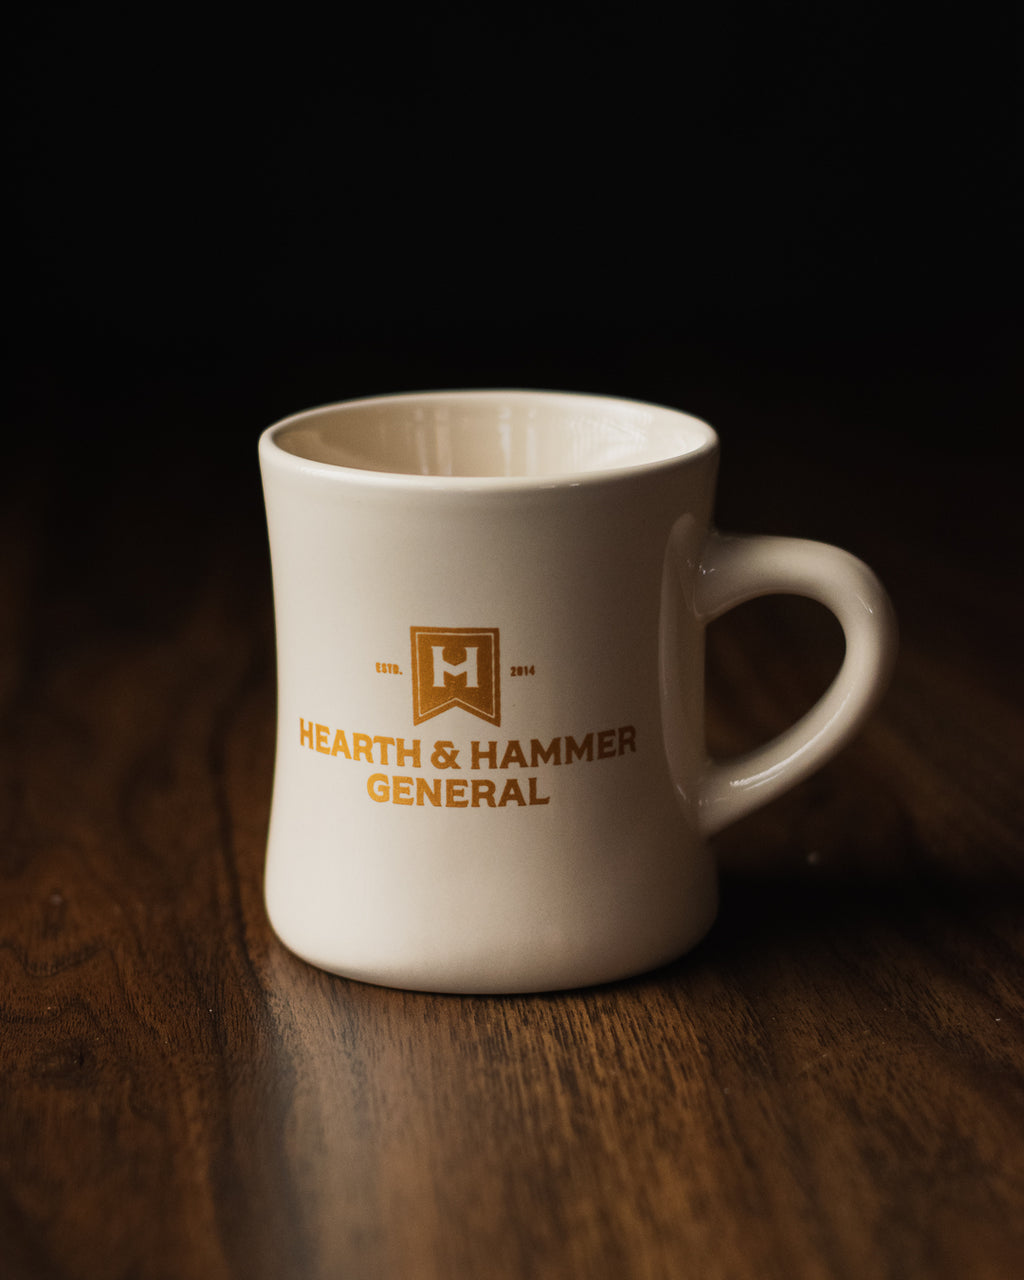 Hearth & Hammer General Diner Mug